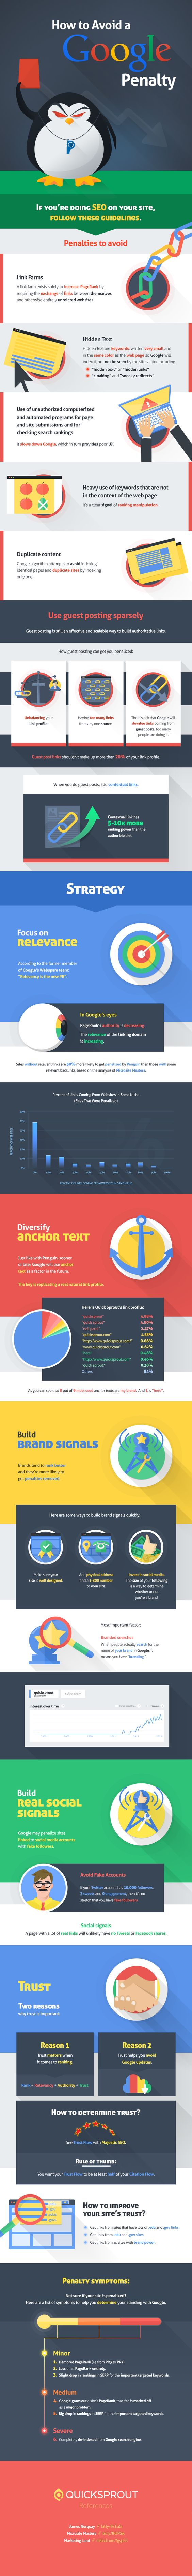 How to Avoid a Google Penalty #infographic #Google #SEO